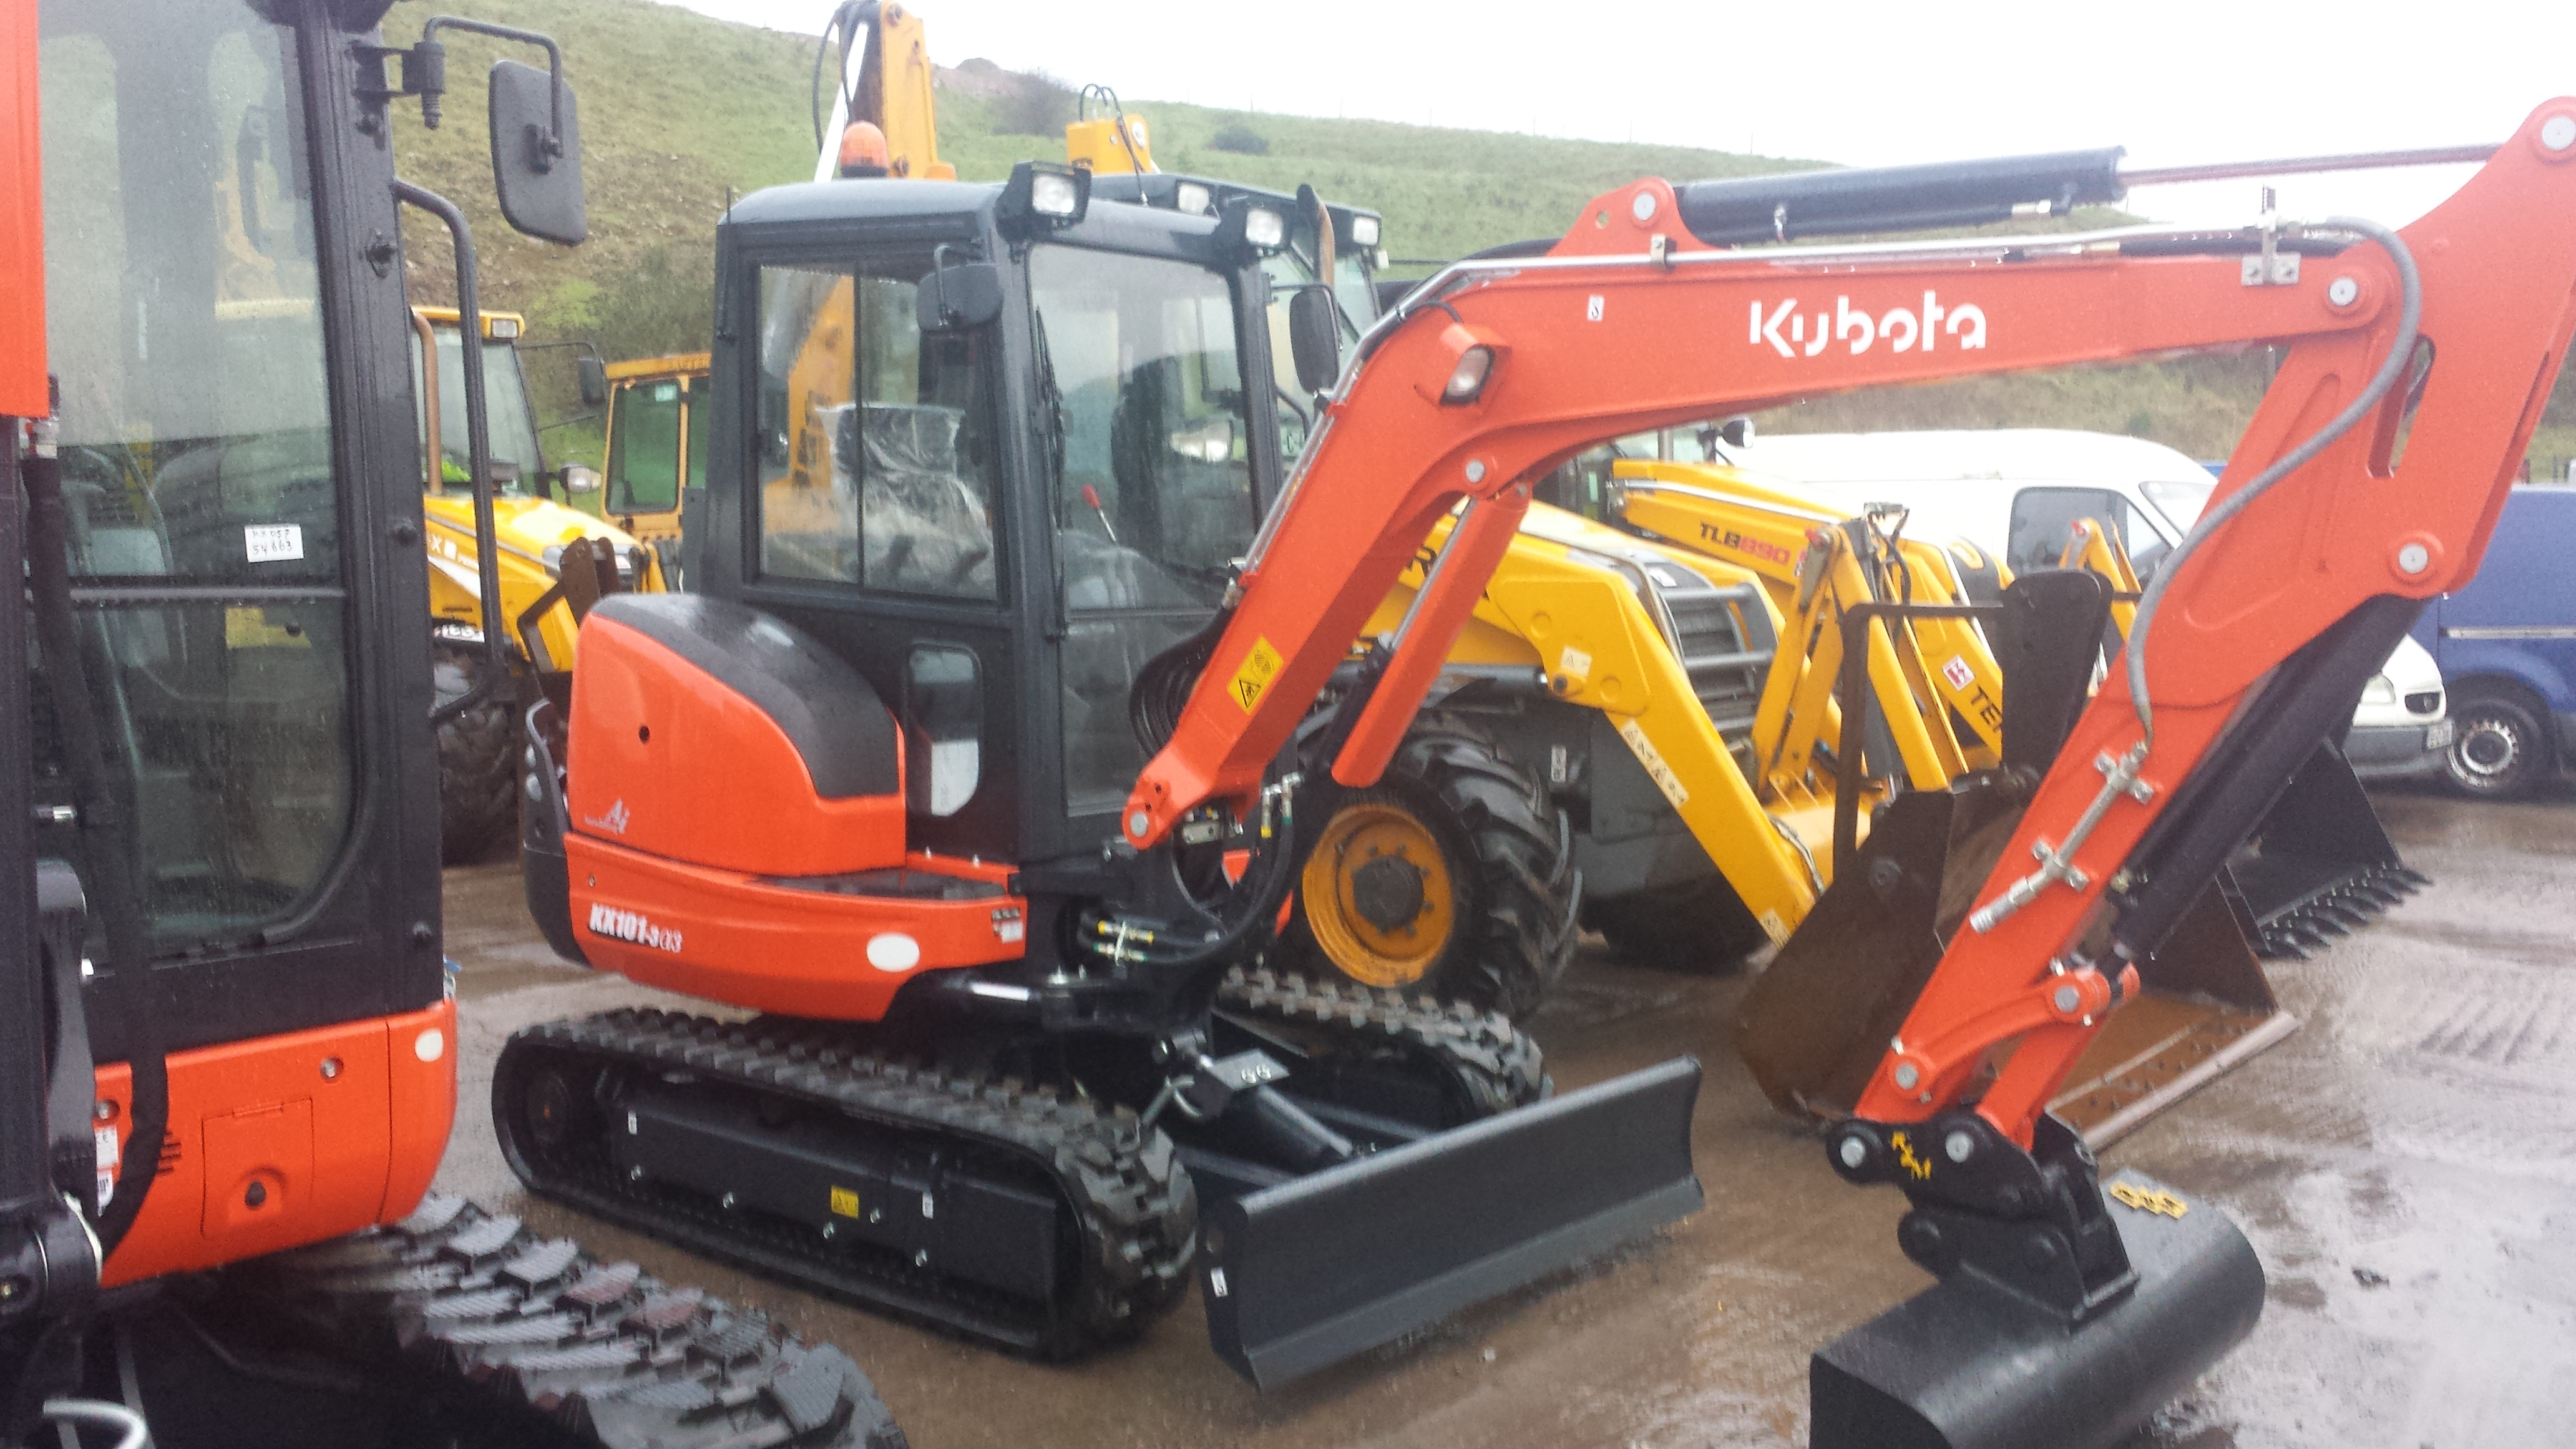 Images of diggers and mini diggers for hire